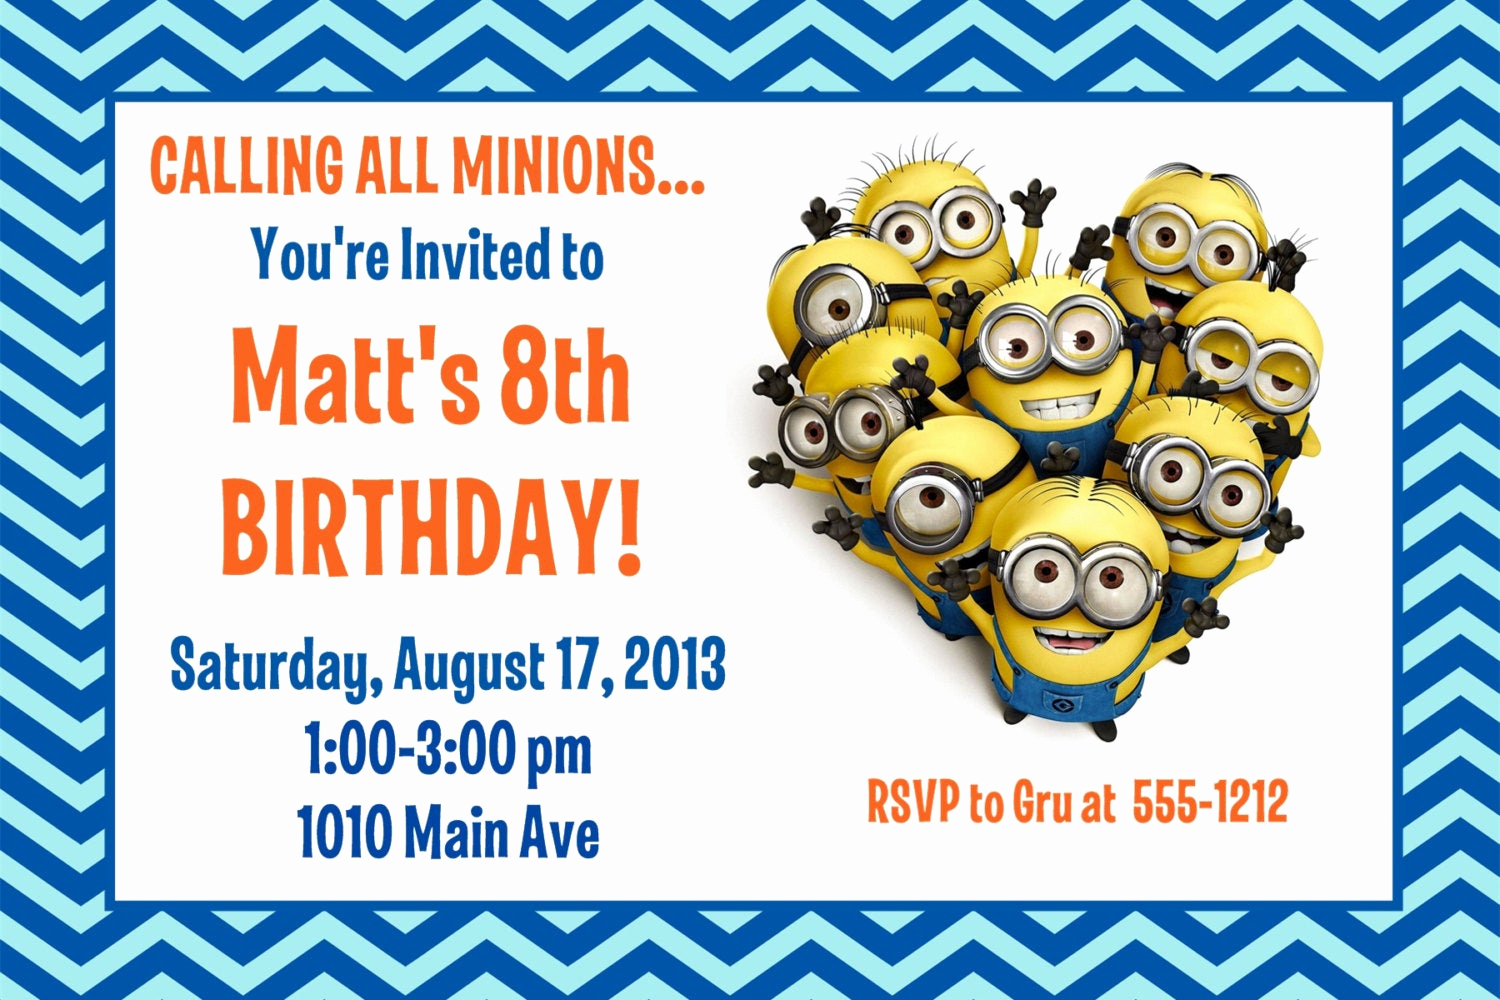 Minions Birthday Invitation Cards Awesome Minion Birthday Party Invitation Printable 4x6 or 5x7